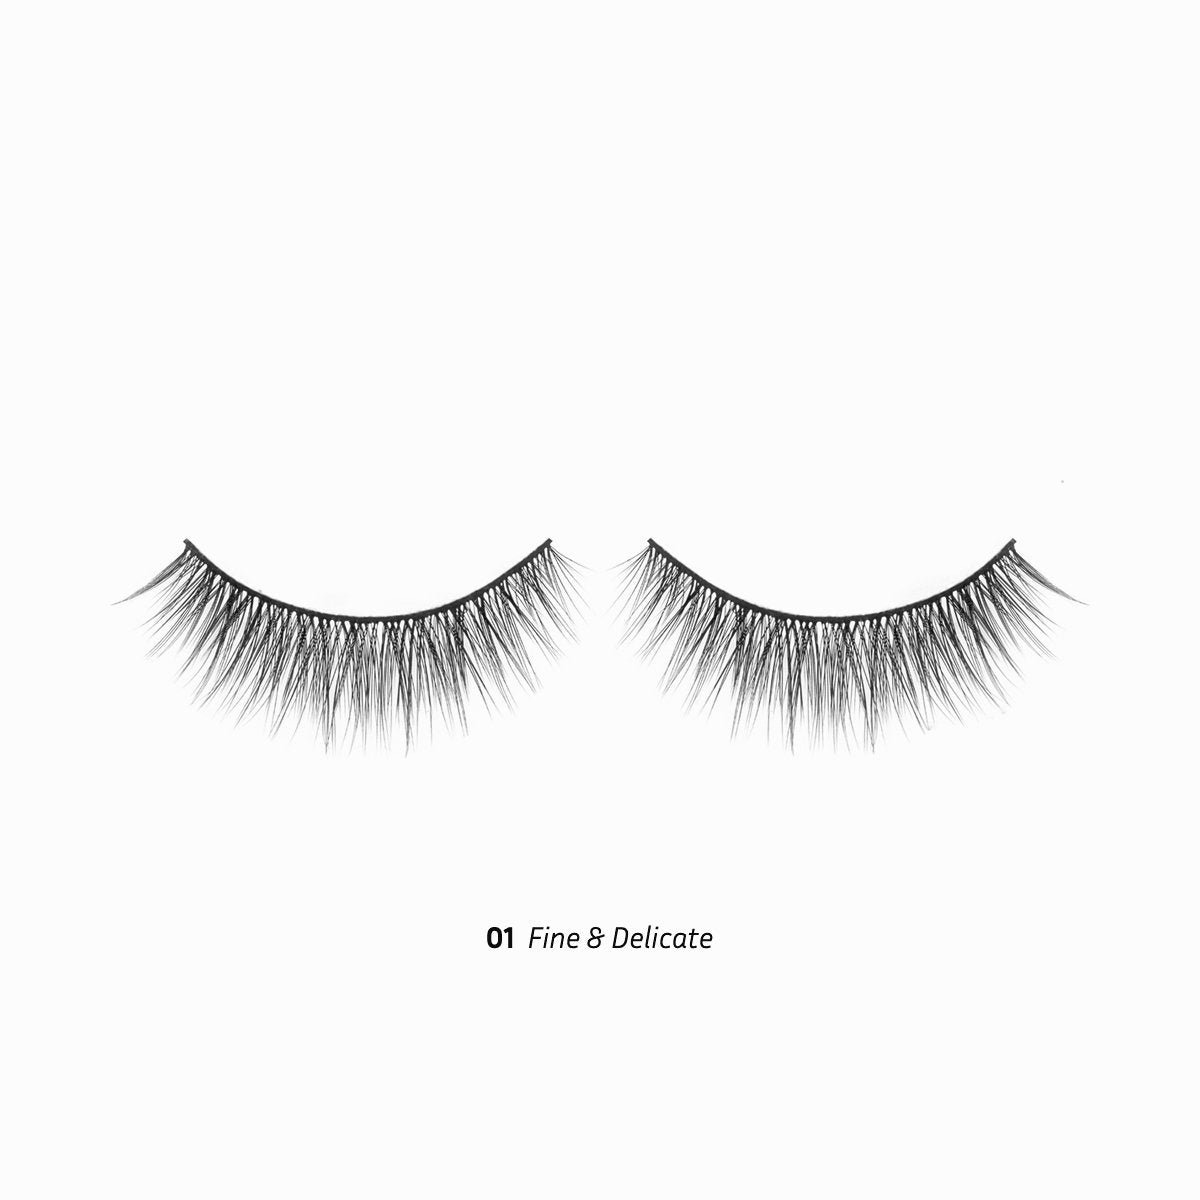 Lithe Lashes® | Minimal Volume Collection | Deals - Save Over 20% | Allure Best of Beauty Winner | False Lashes | Strip Lashes | Falsies | Faux Lashes